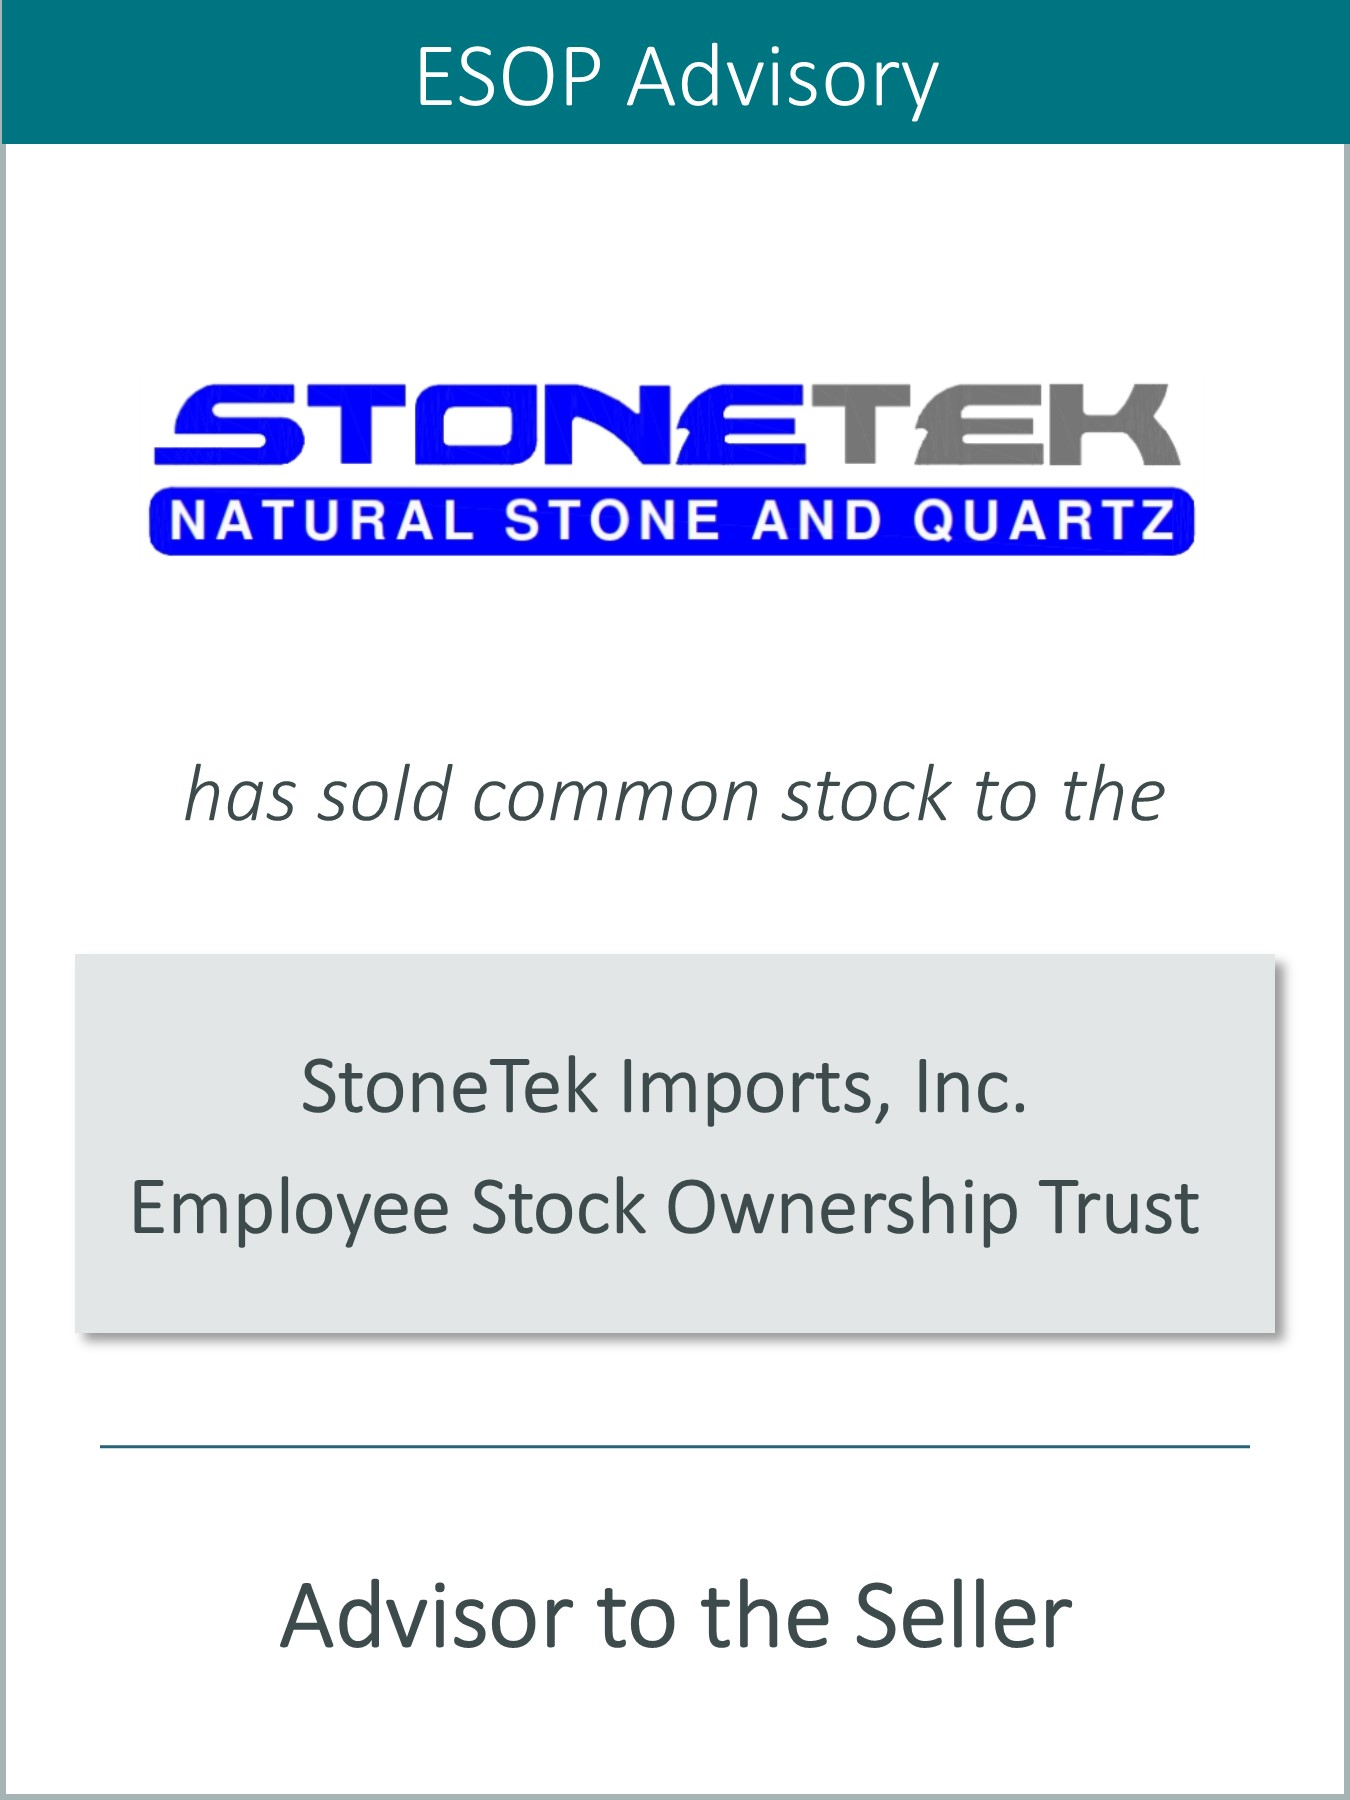 Prairie Represents StoneTek Imports, Inc. in its Sale to an ESOP